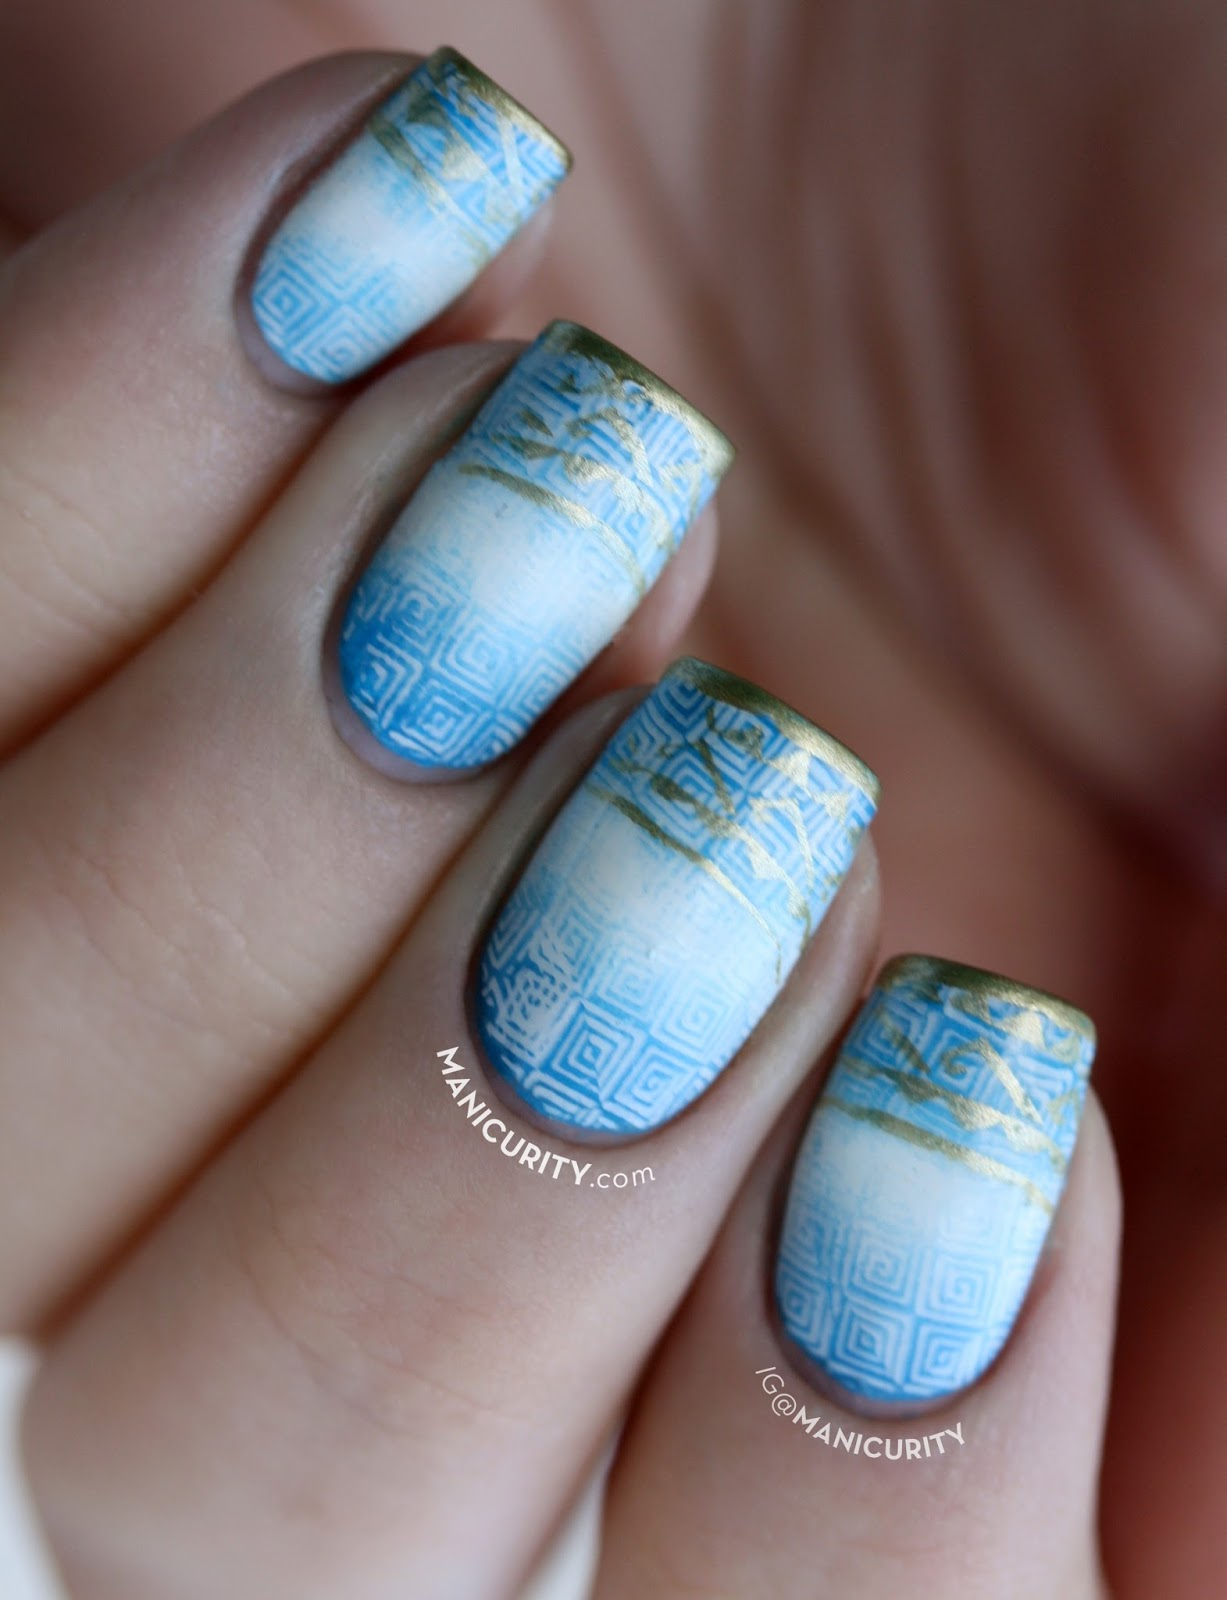 Manicurity.com | It's All Greek to Me! Double-Stamped Nails inspired by the Percy Jackson book series